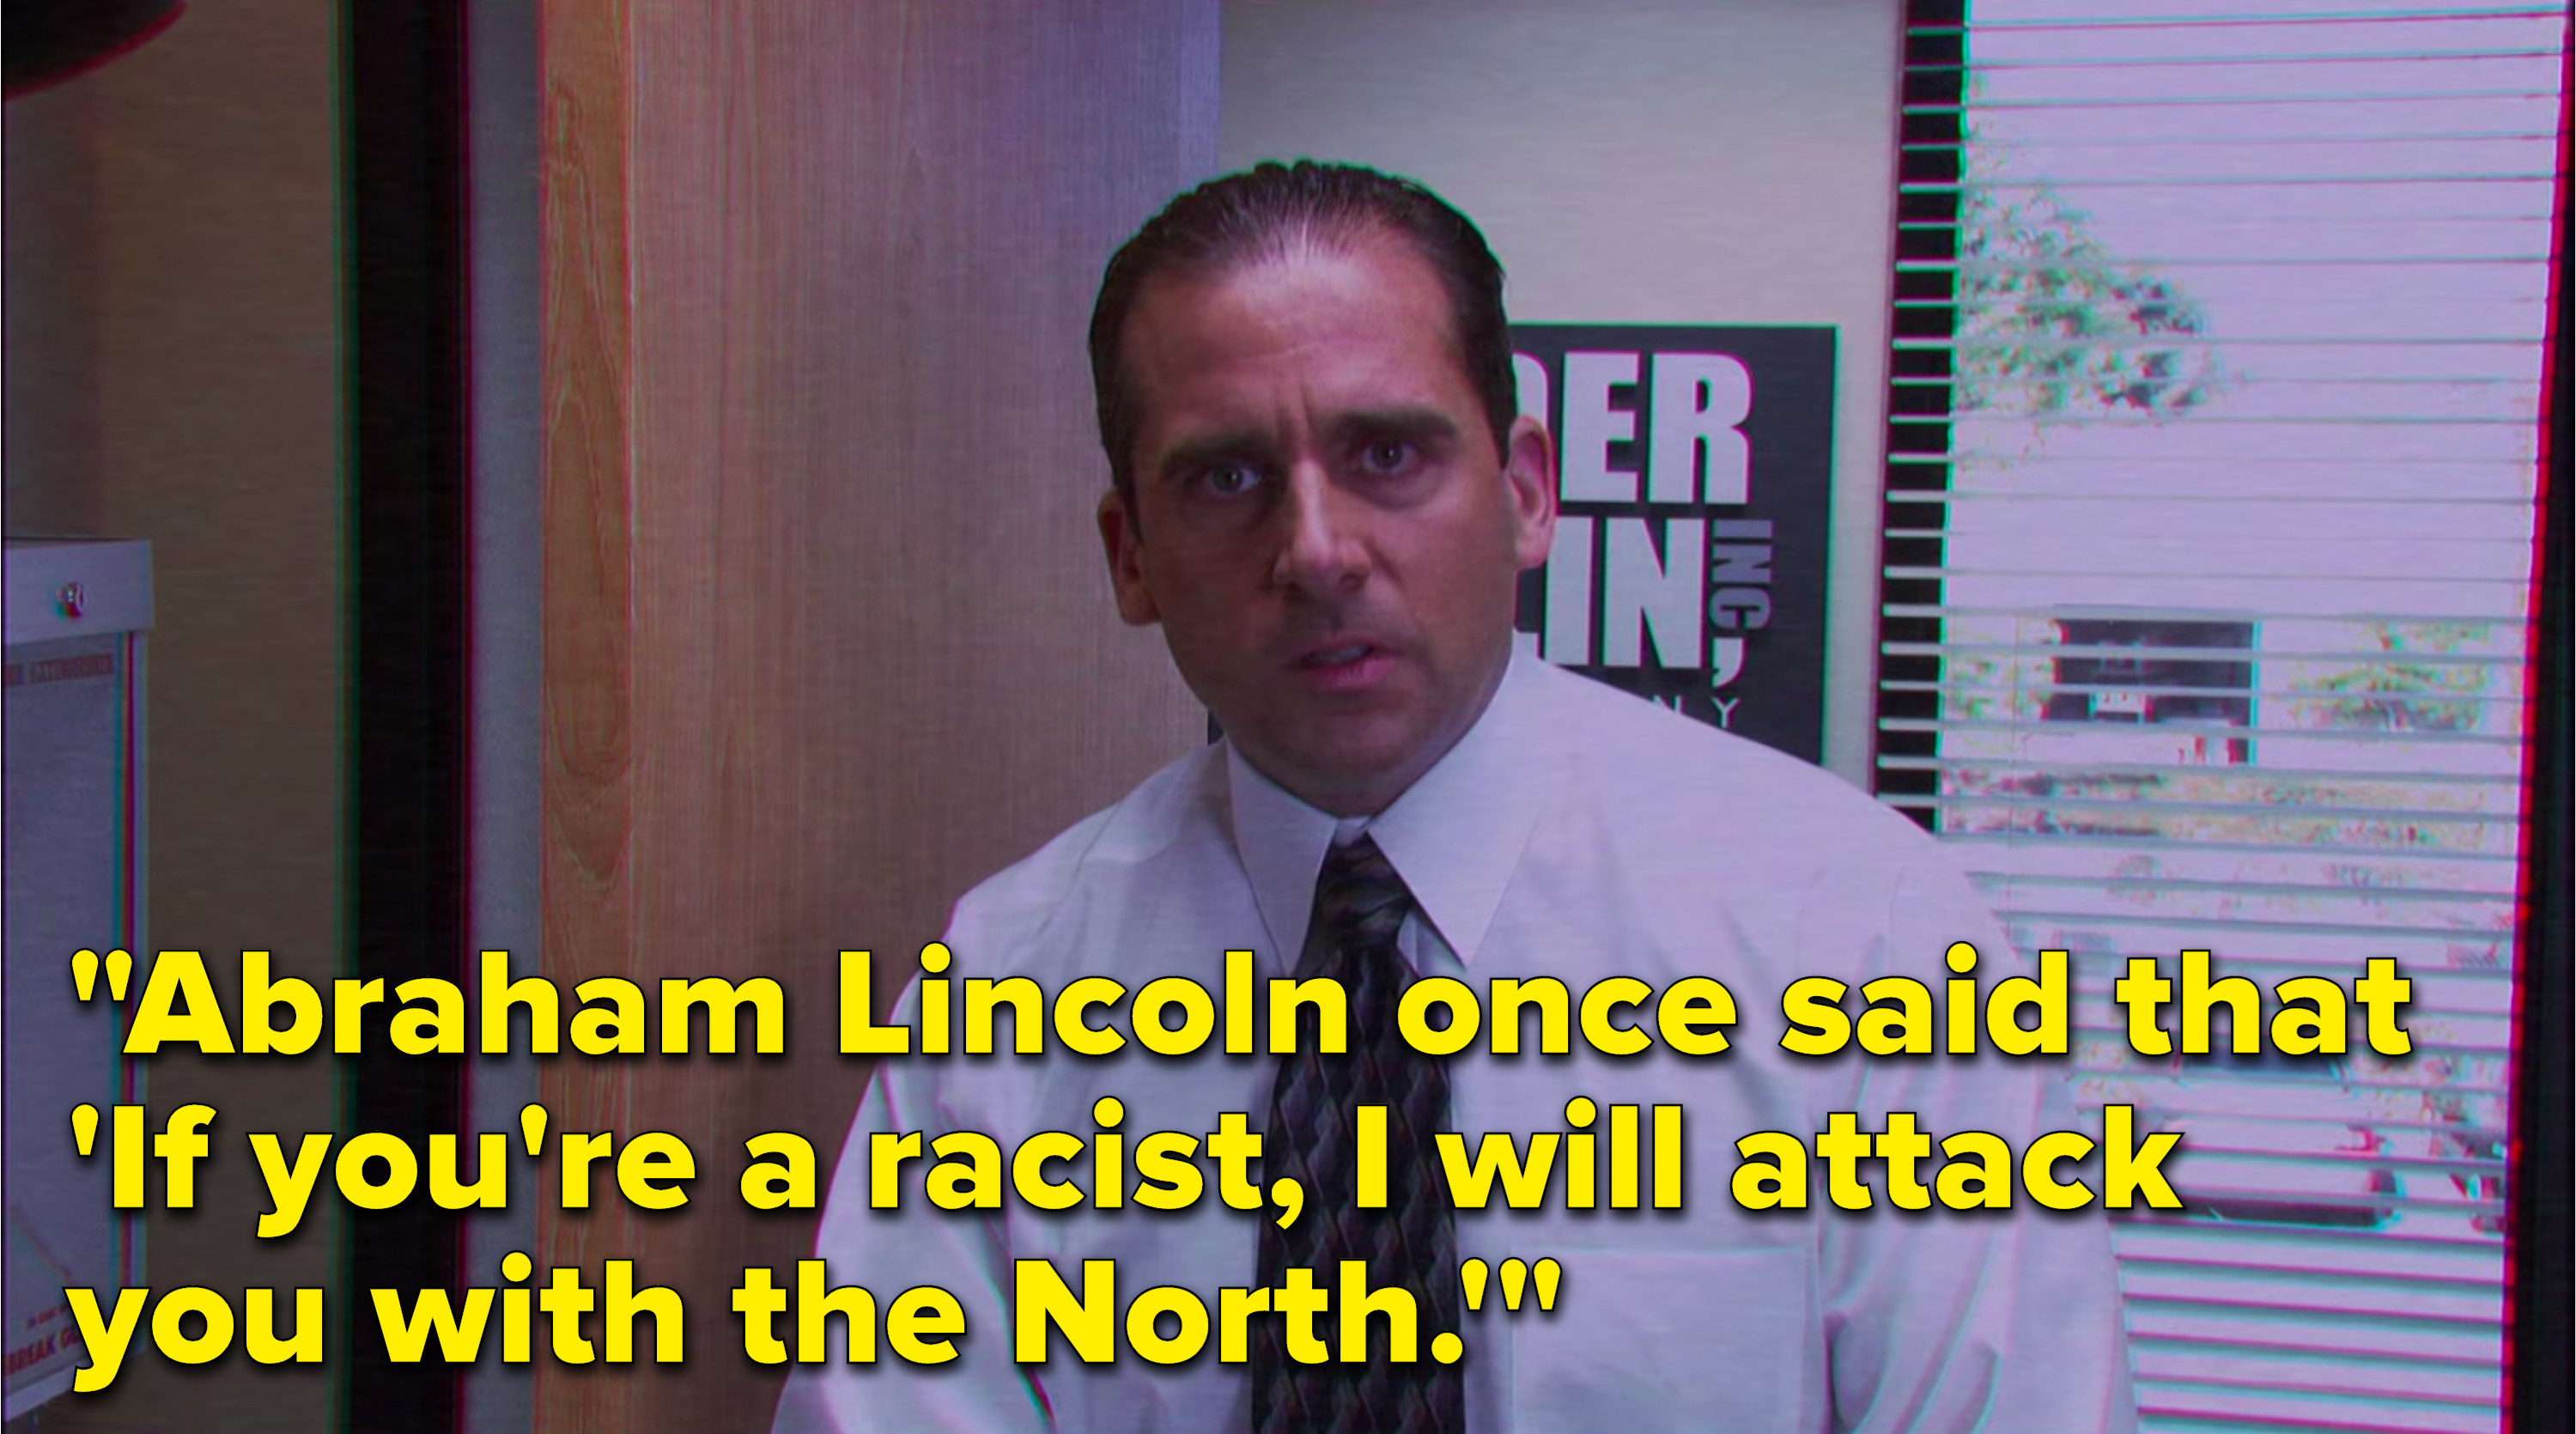 """Michael says, """"Abraham Lincoln once said that 'If you're a racist, I will attack you with the North'"""""""